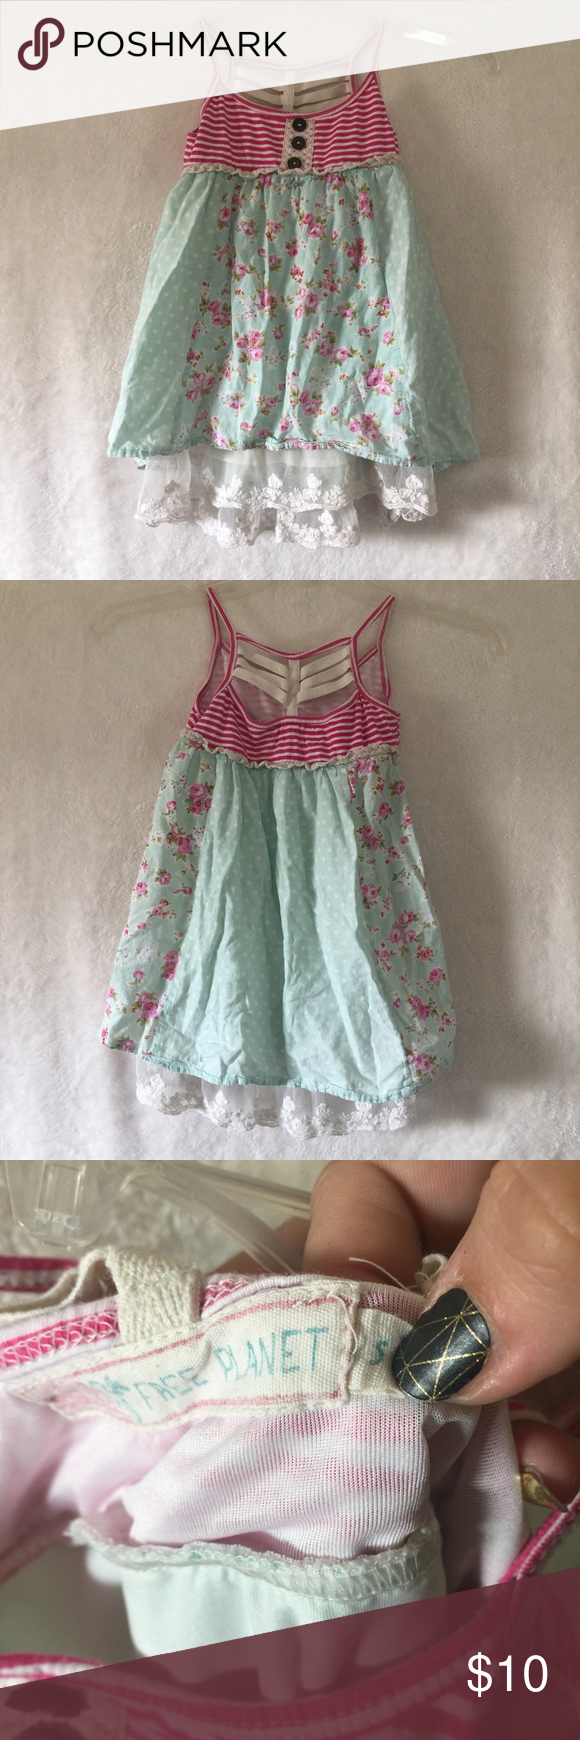 Free planet girls sz 5 boho dress So adorable! This pretty little dress is perfect for any flower child. Pink striped top with button details, a floral and polka dot skirt and lace peeking out the bottom. Unique cage back. There is a small stain on the back as shown. May come out. free planet Dresses Casual